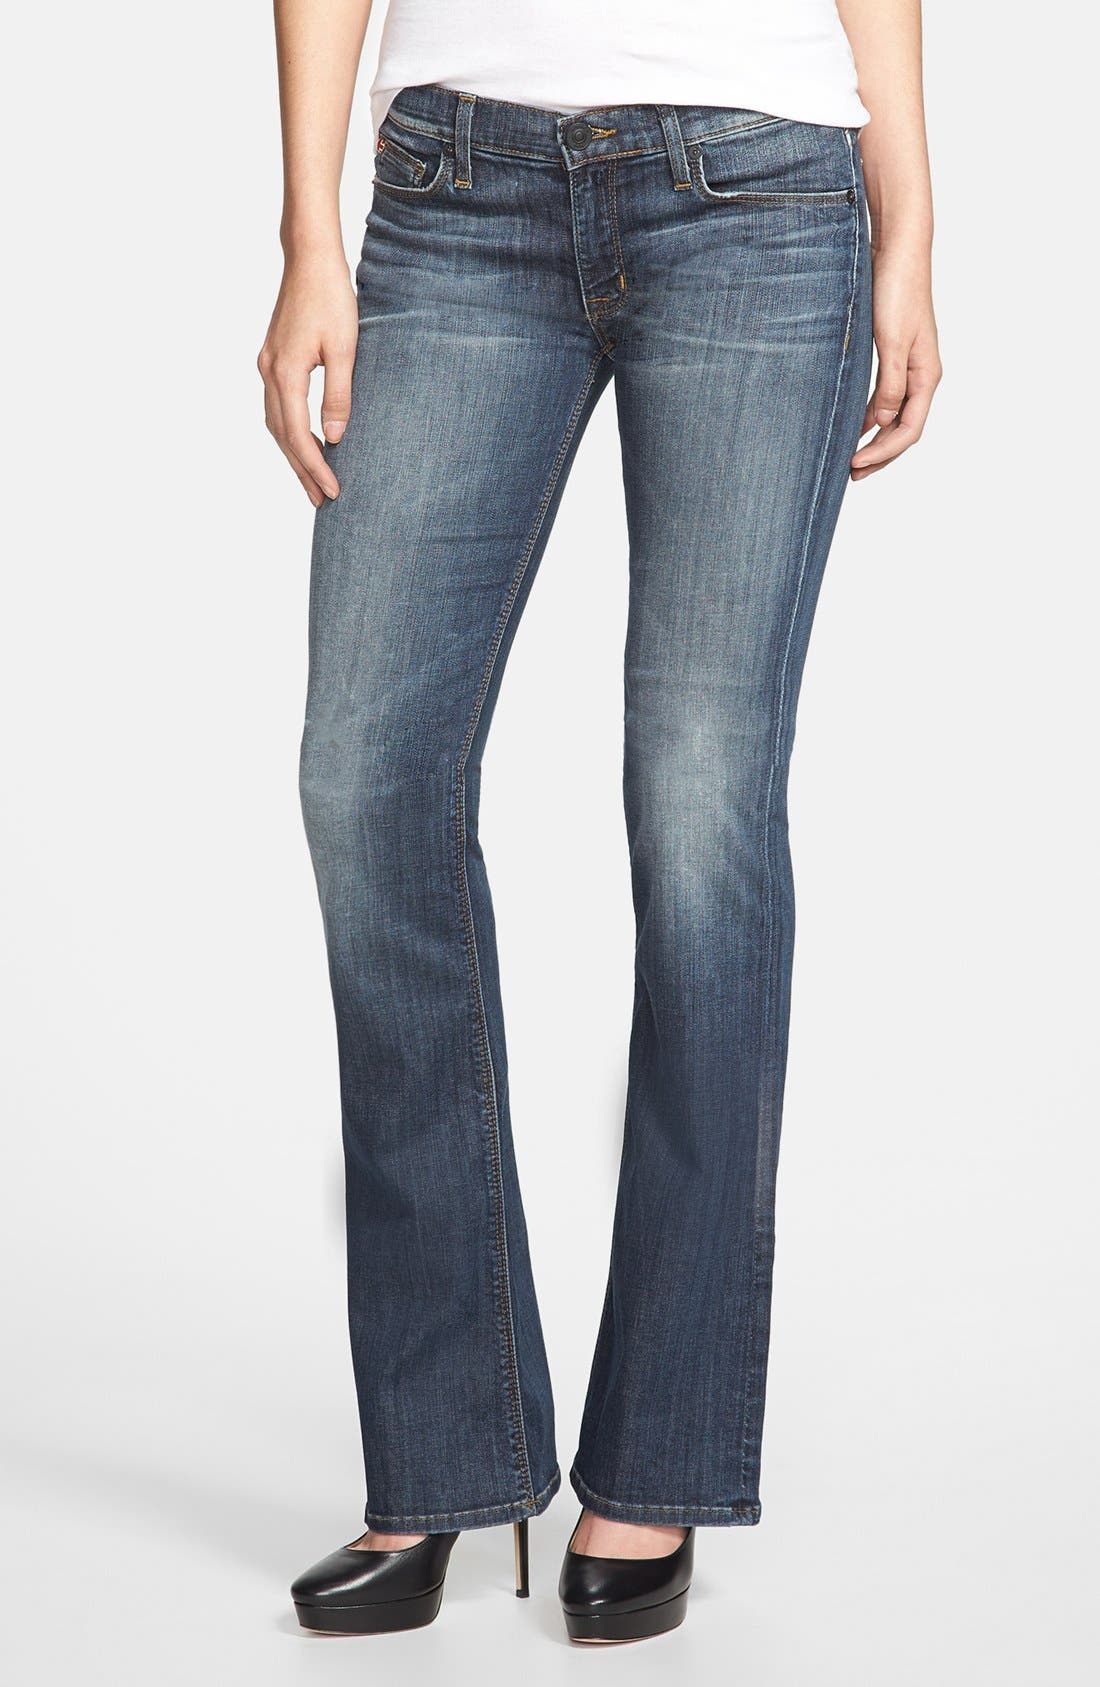 Main Image - Hudson Jeans 'Love' Low Rise Bootcut Jeans (Glam)